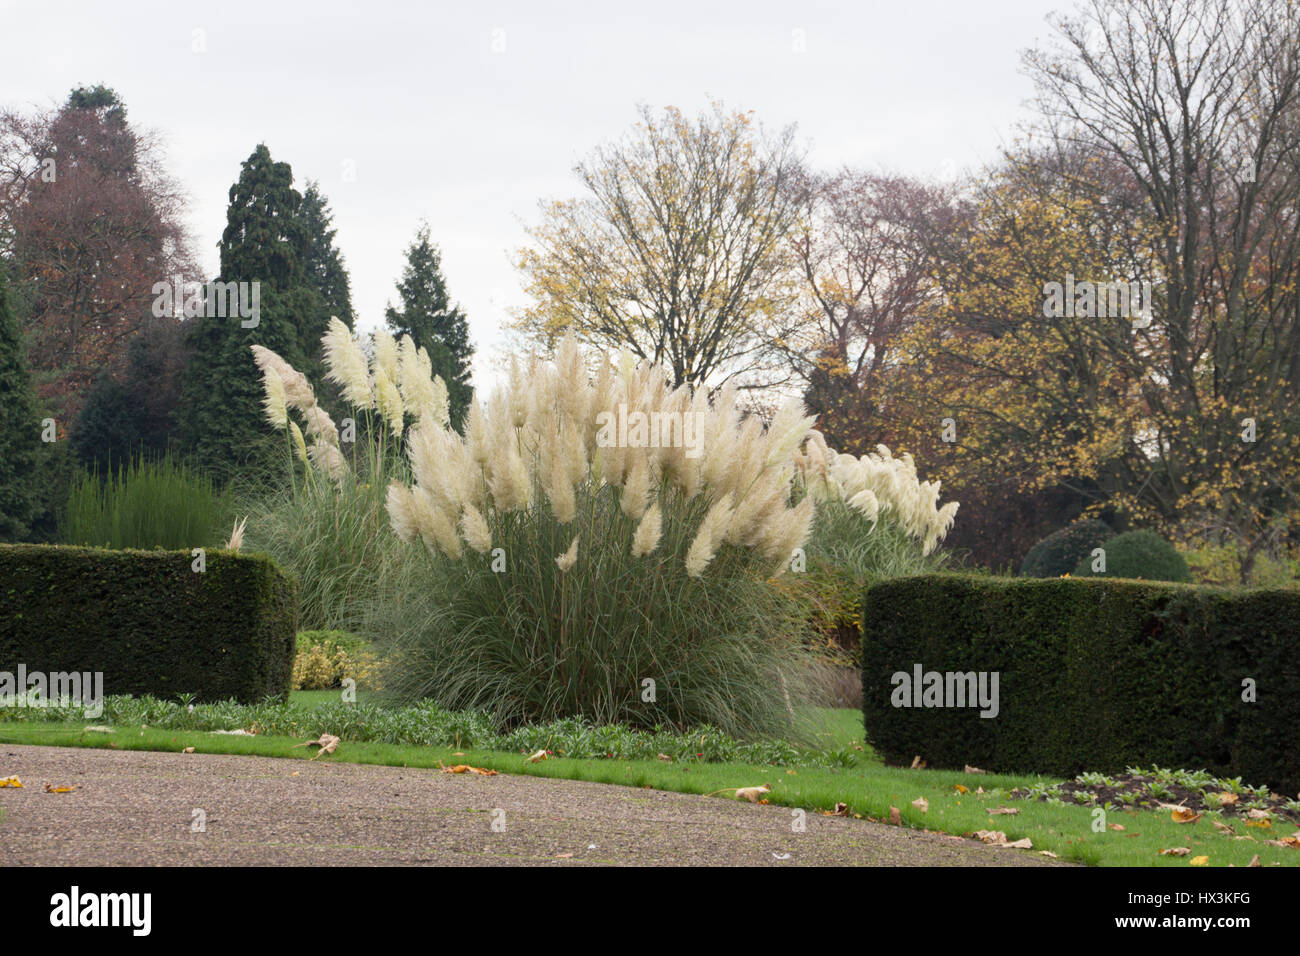 Oriental grass in a park - Stock Image